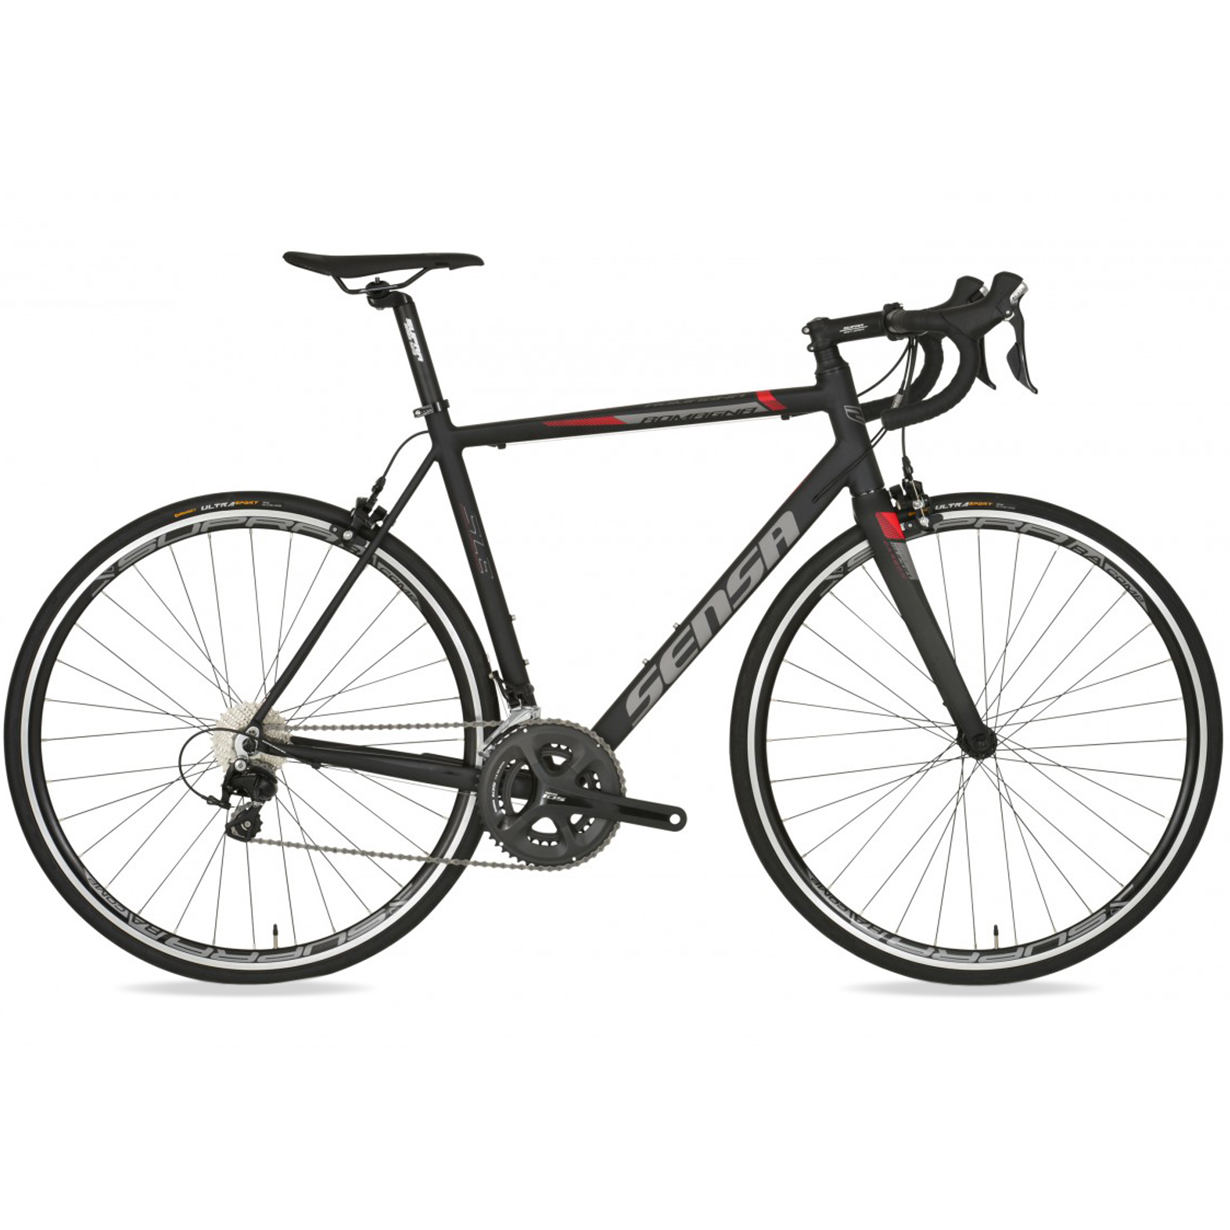 Sensa Romagna SLE Road Bike - LTD Edition